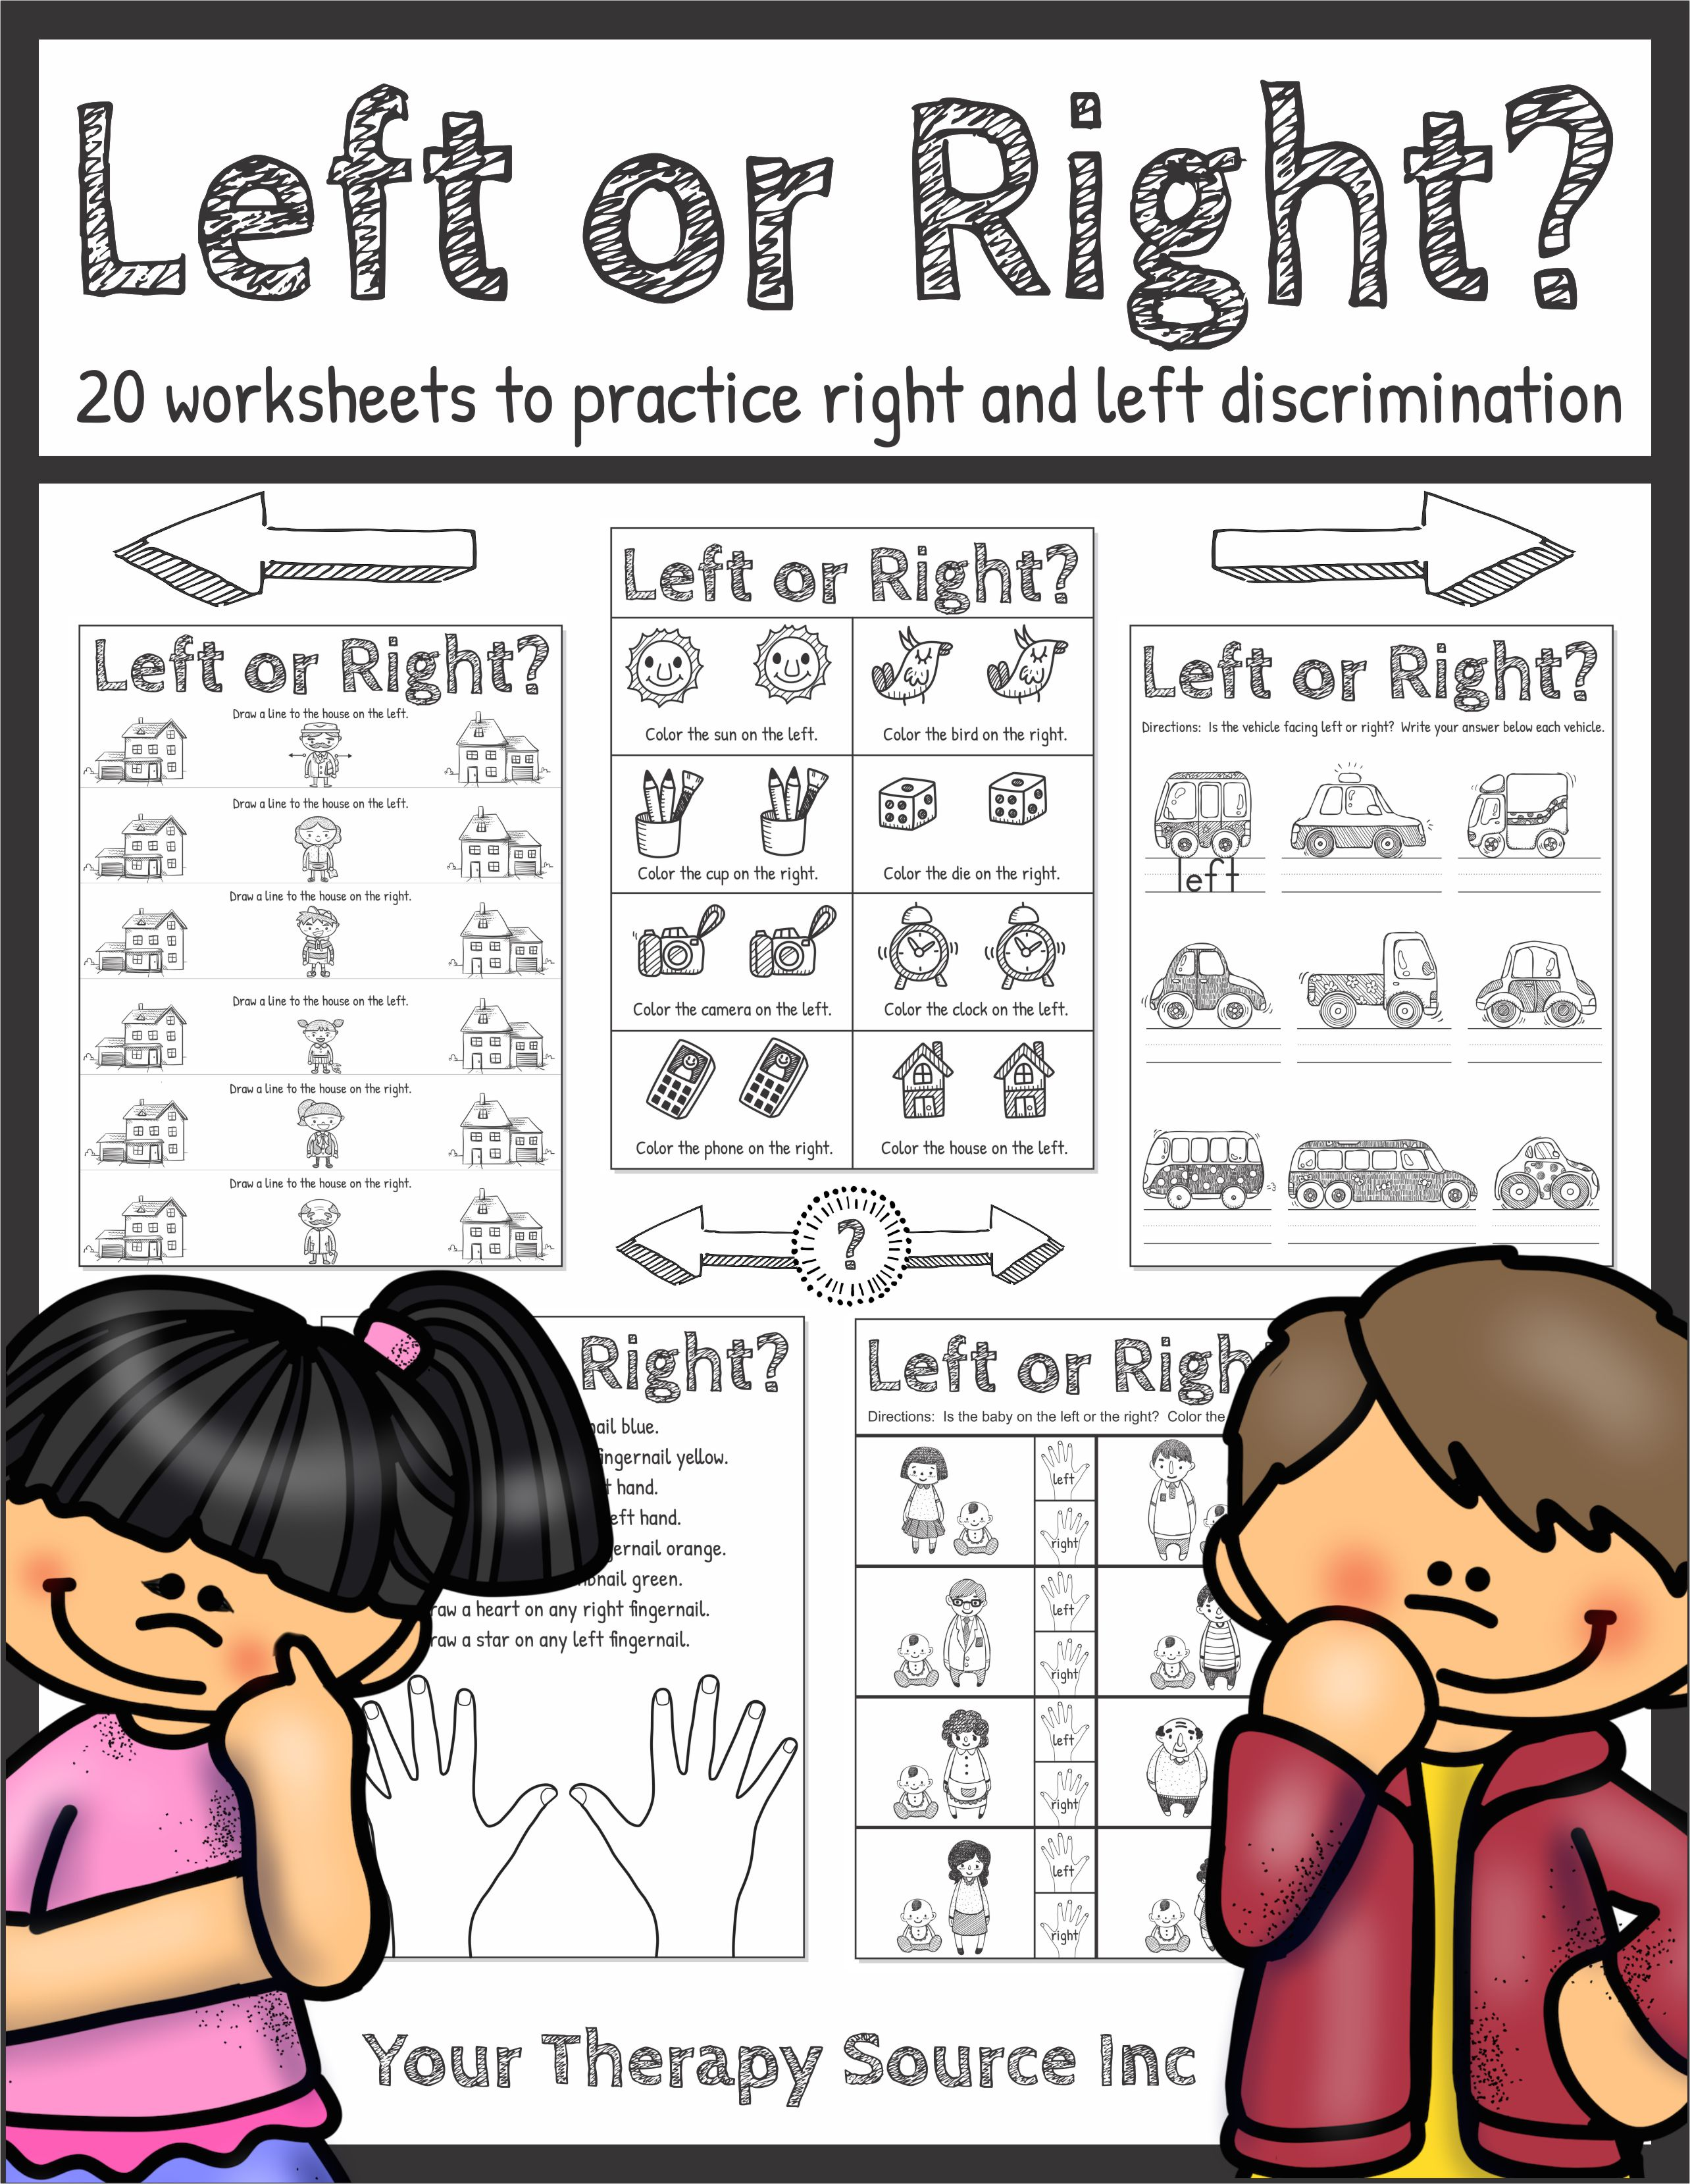 Left or Right Worksheets from Your Therapy Source